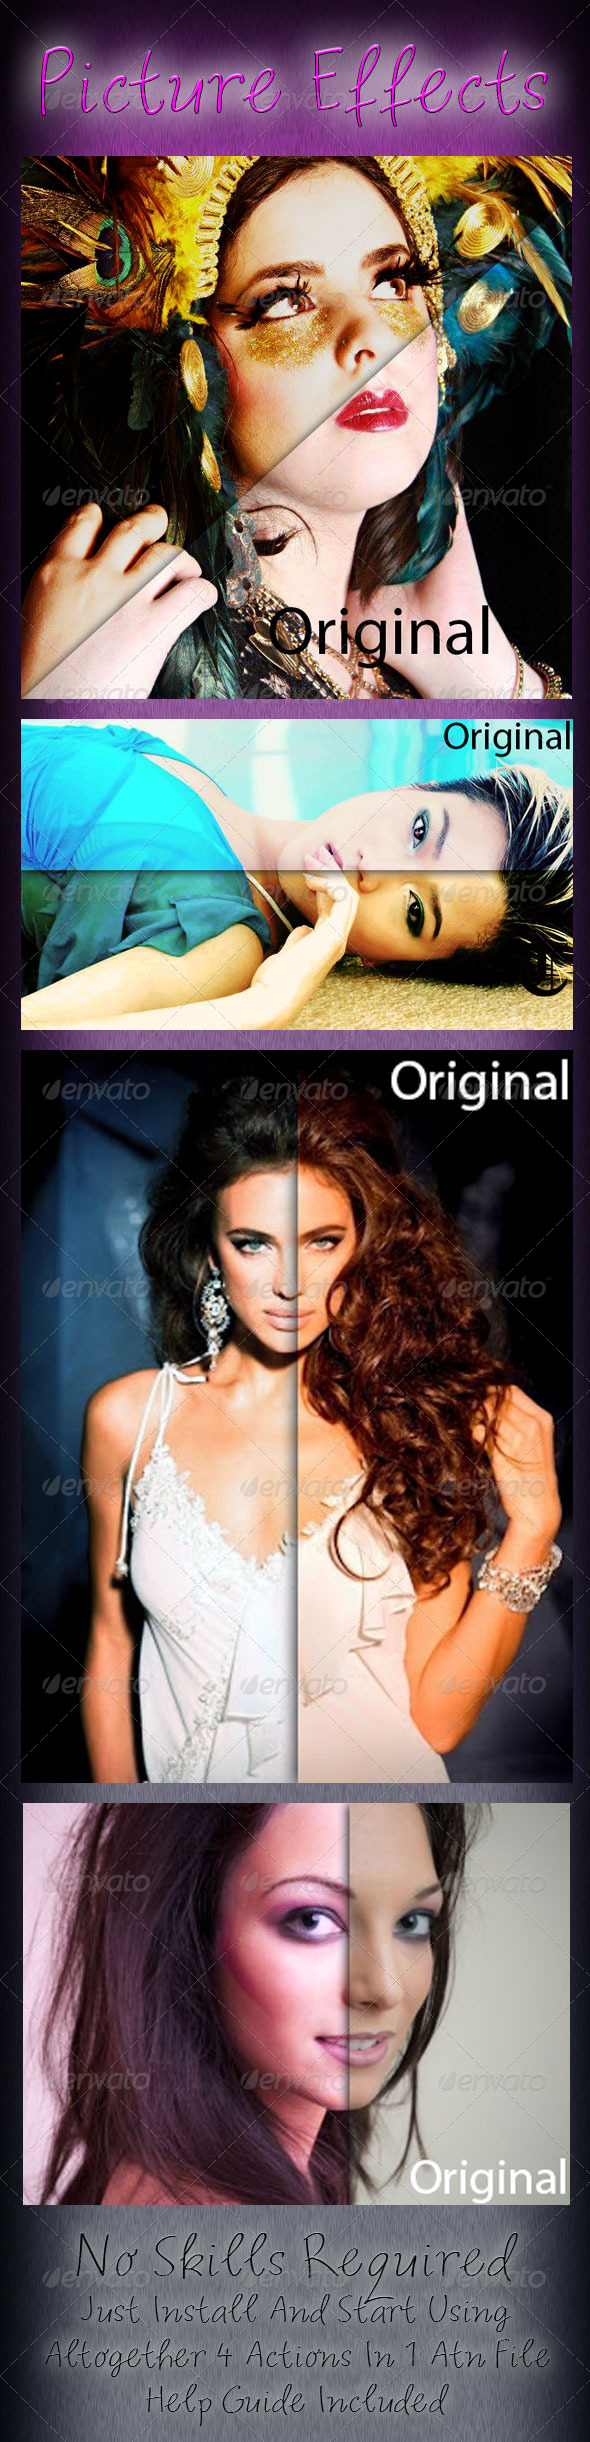 GraphicRiver Picture Effects 6261759